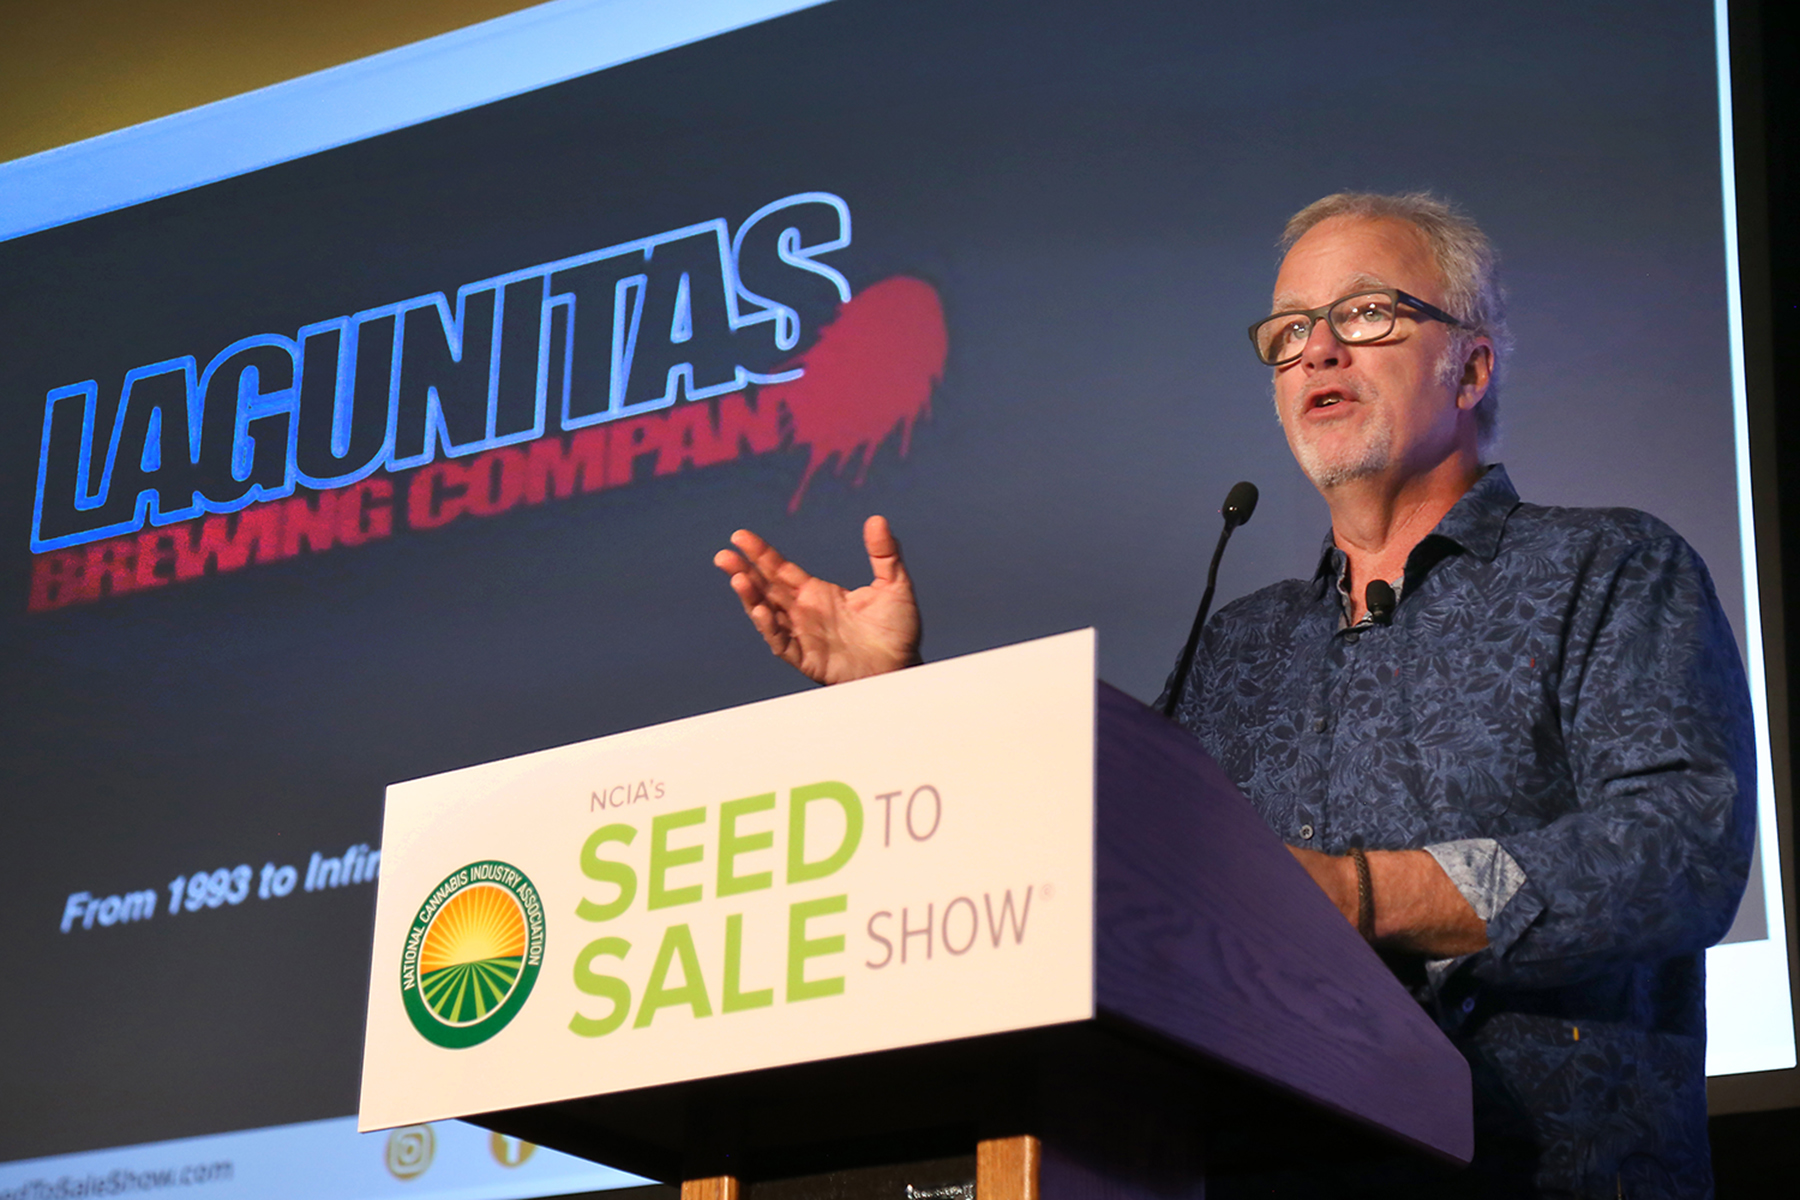 Tony Magee, founder and CEO of Lagunitas Brewing Company, gives the keynote address at the National Cannabis Industry Association's 2018 Seed to Sale Show // Photo courtesy NCIA